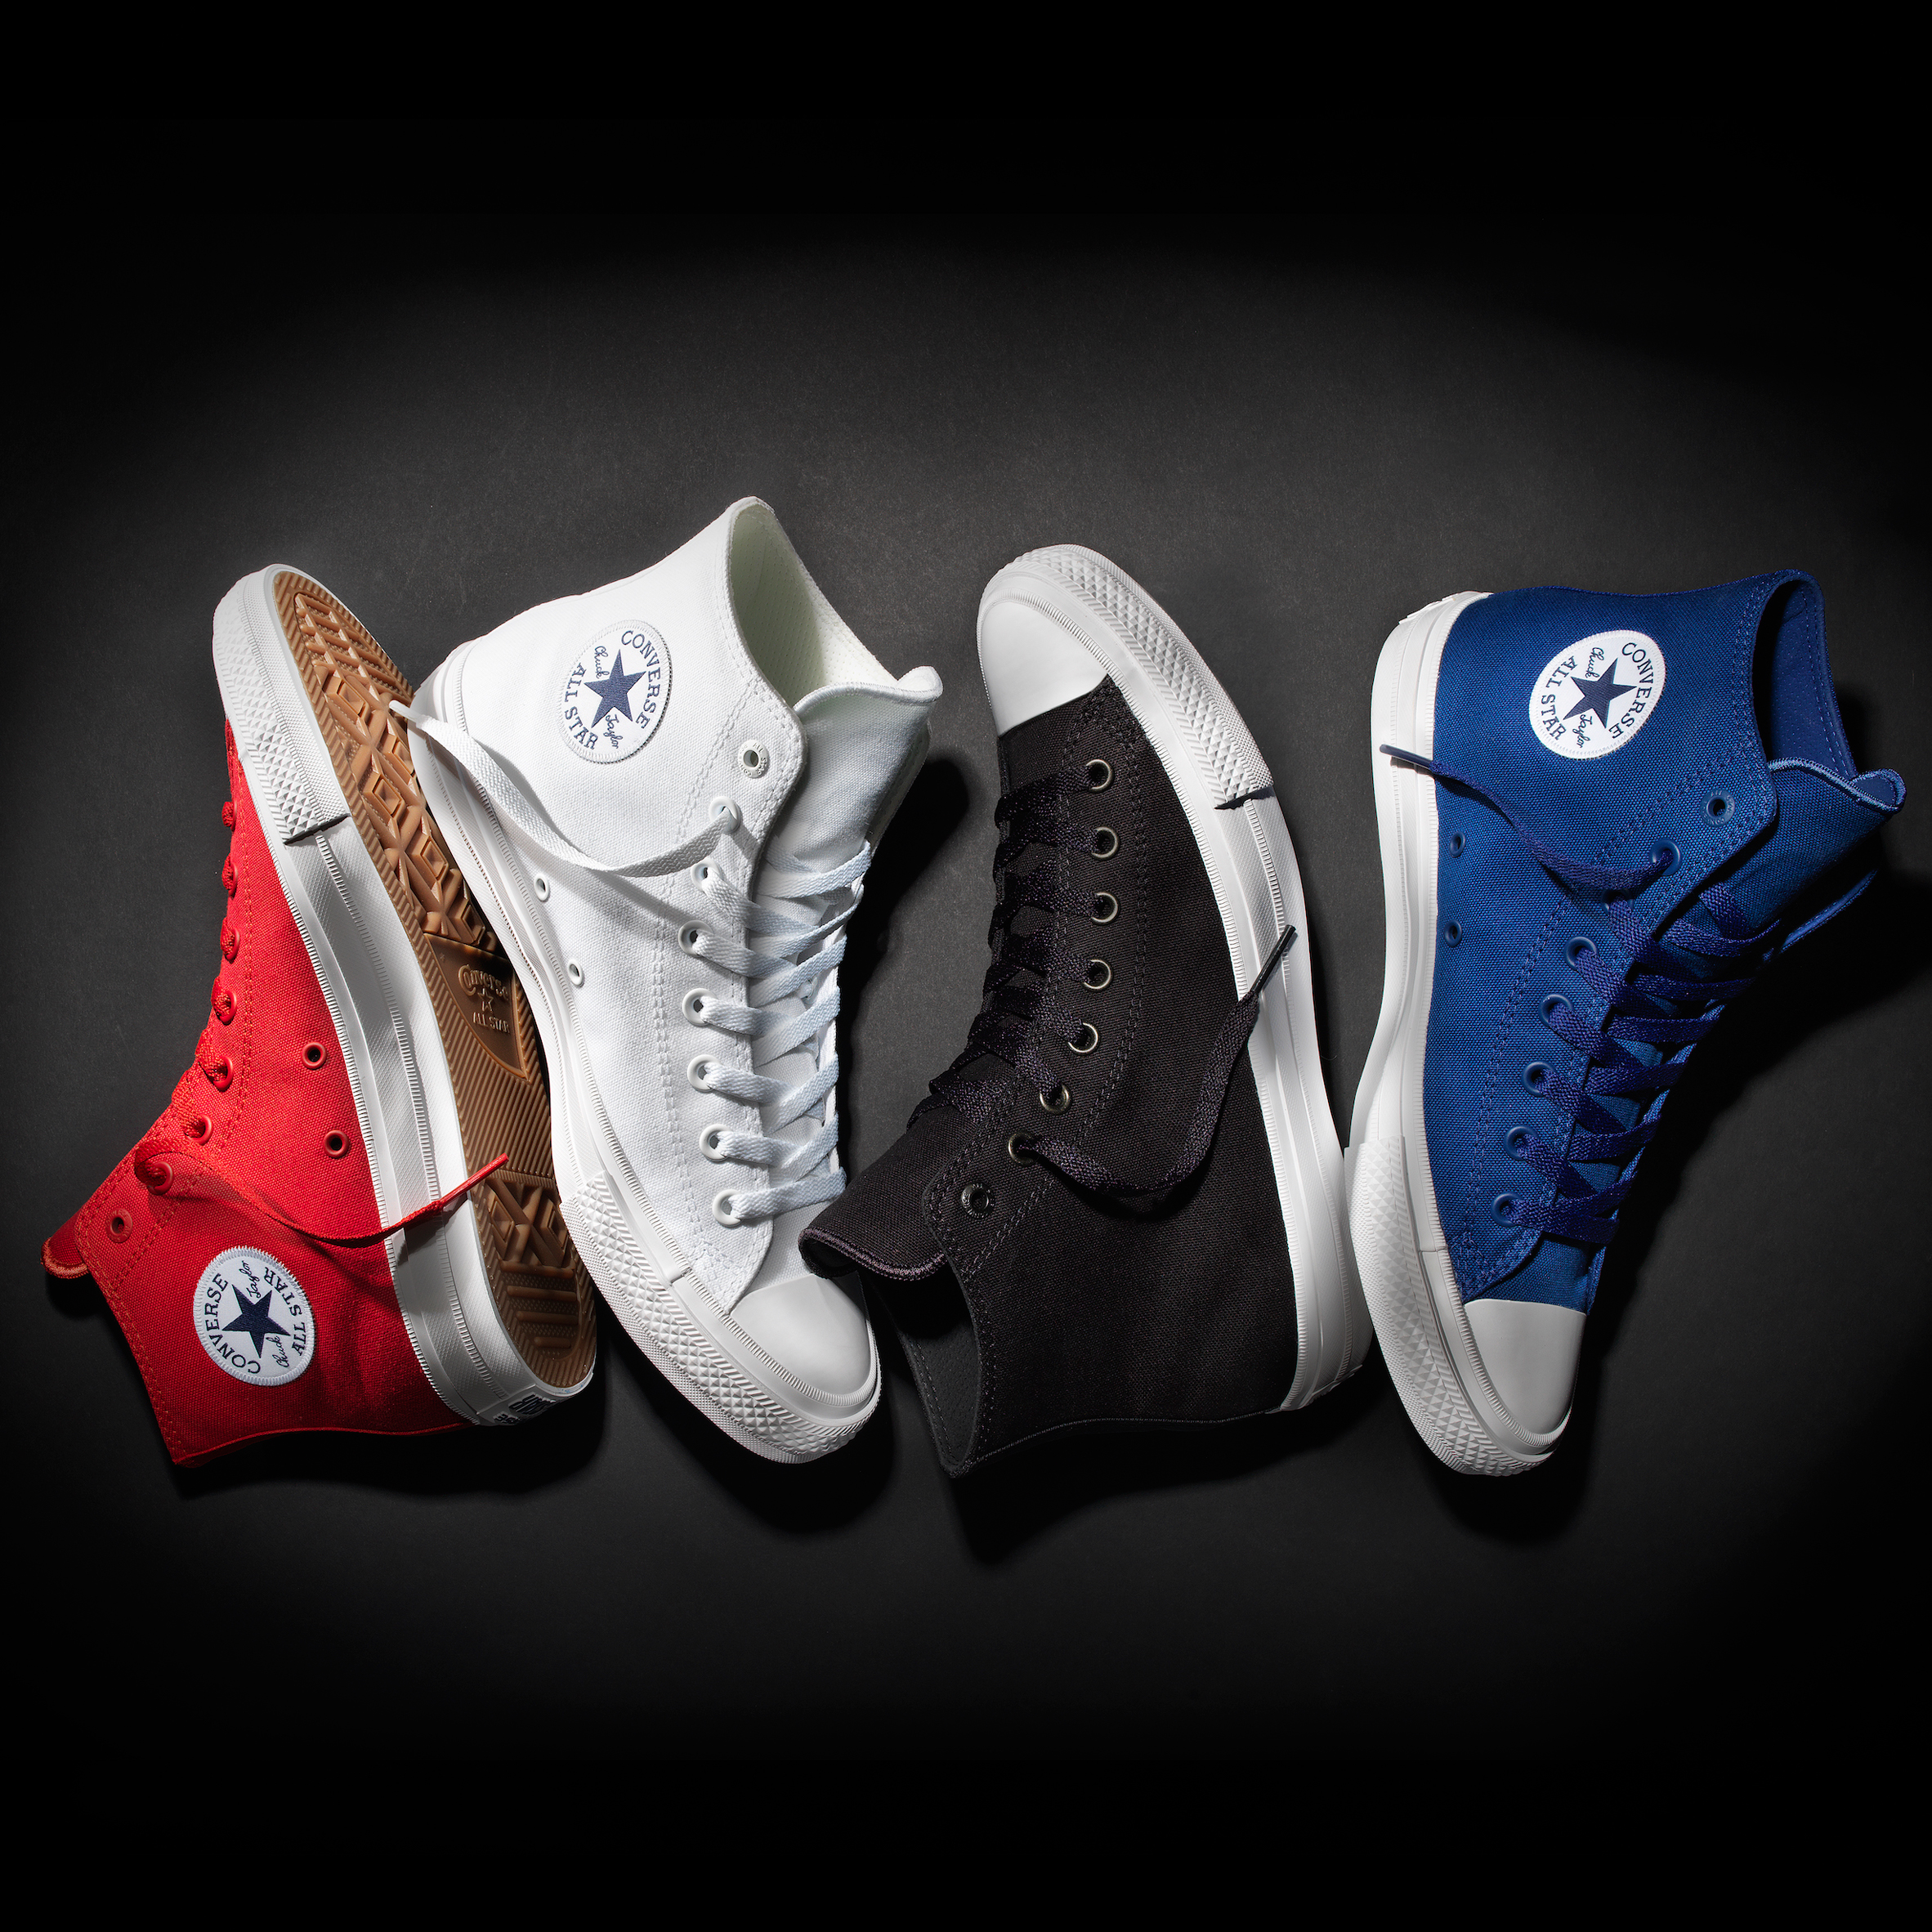 converse new release 2016